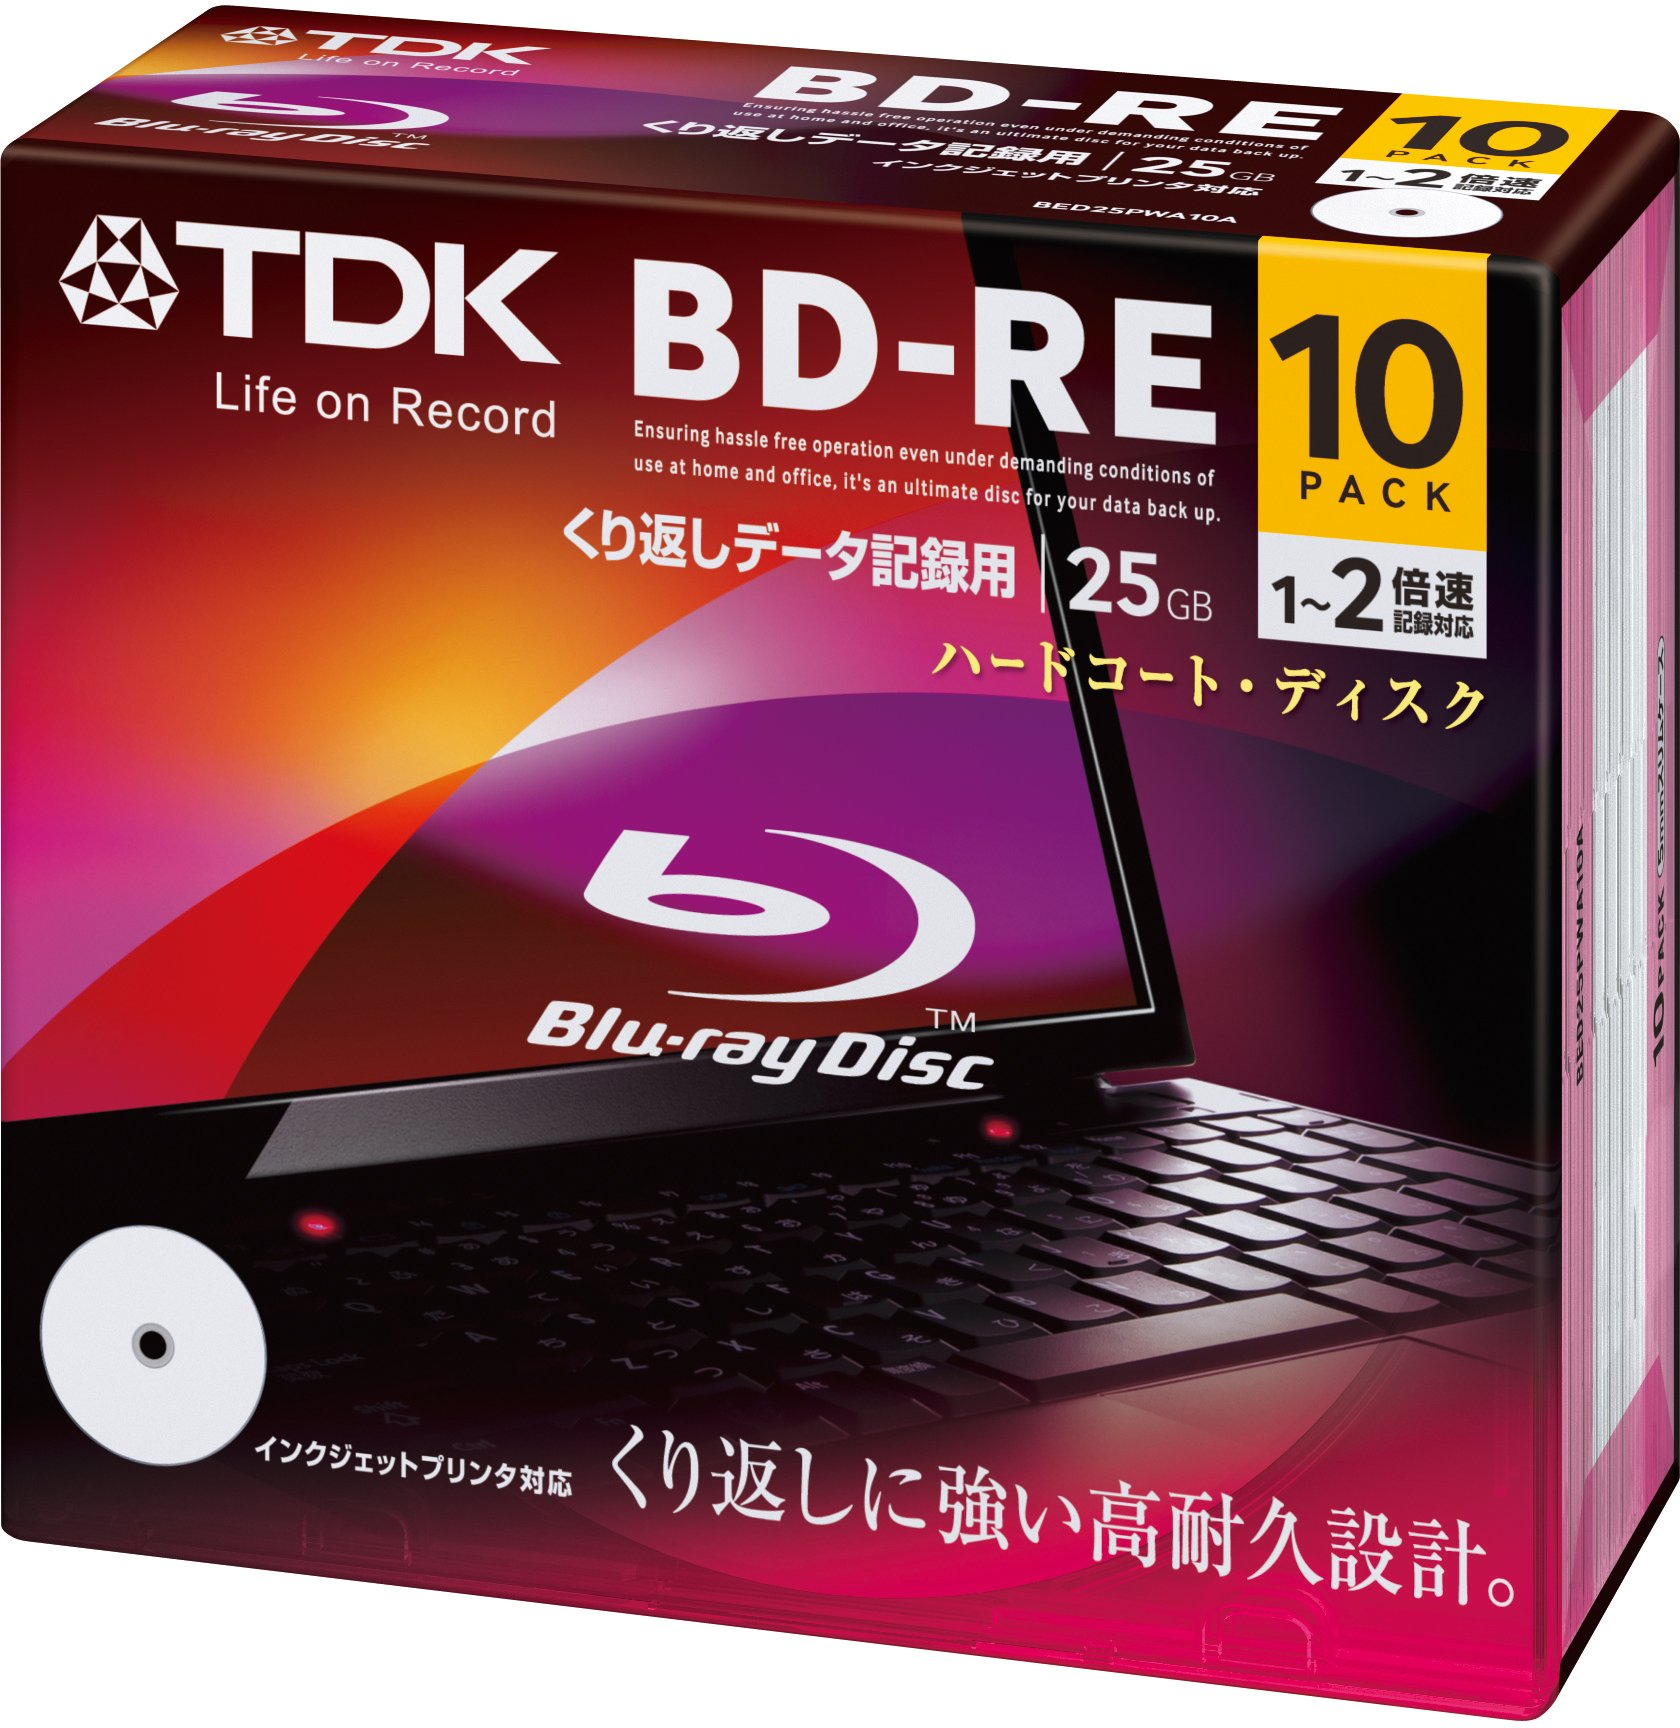 TDK Blu-Ray BD-RE Rewritable Ver. 2.1 25GB 2x Speed - 10 Pack Slim Case - Printable by TDK